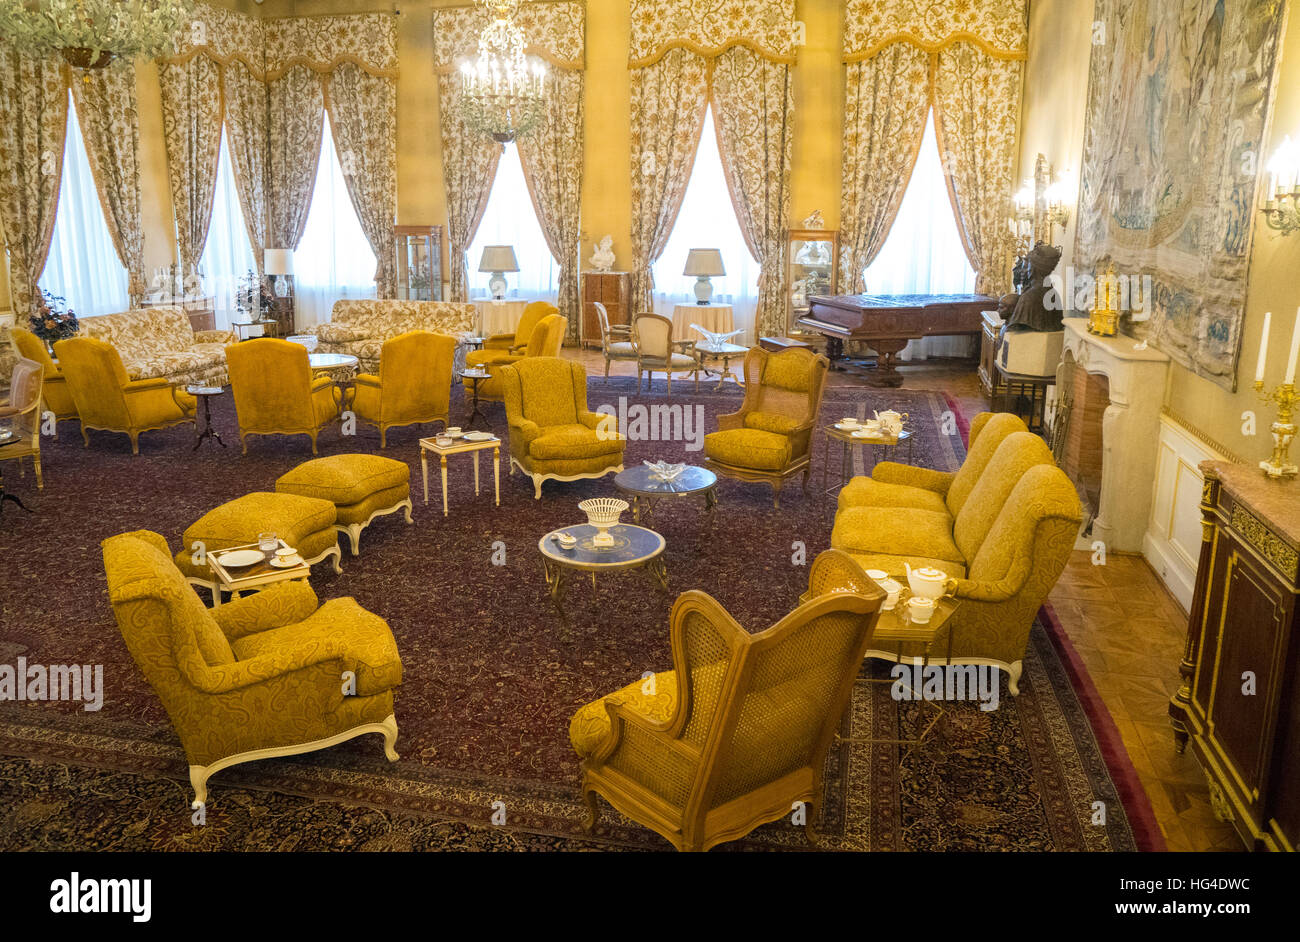 Sitting room, White Palace, the last Shah's Summer Palace, Sa'ad Abad, Tehran, Iran, Middle East - Stock Image